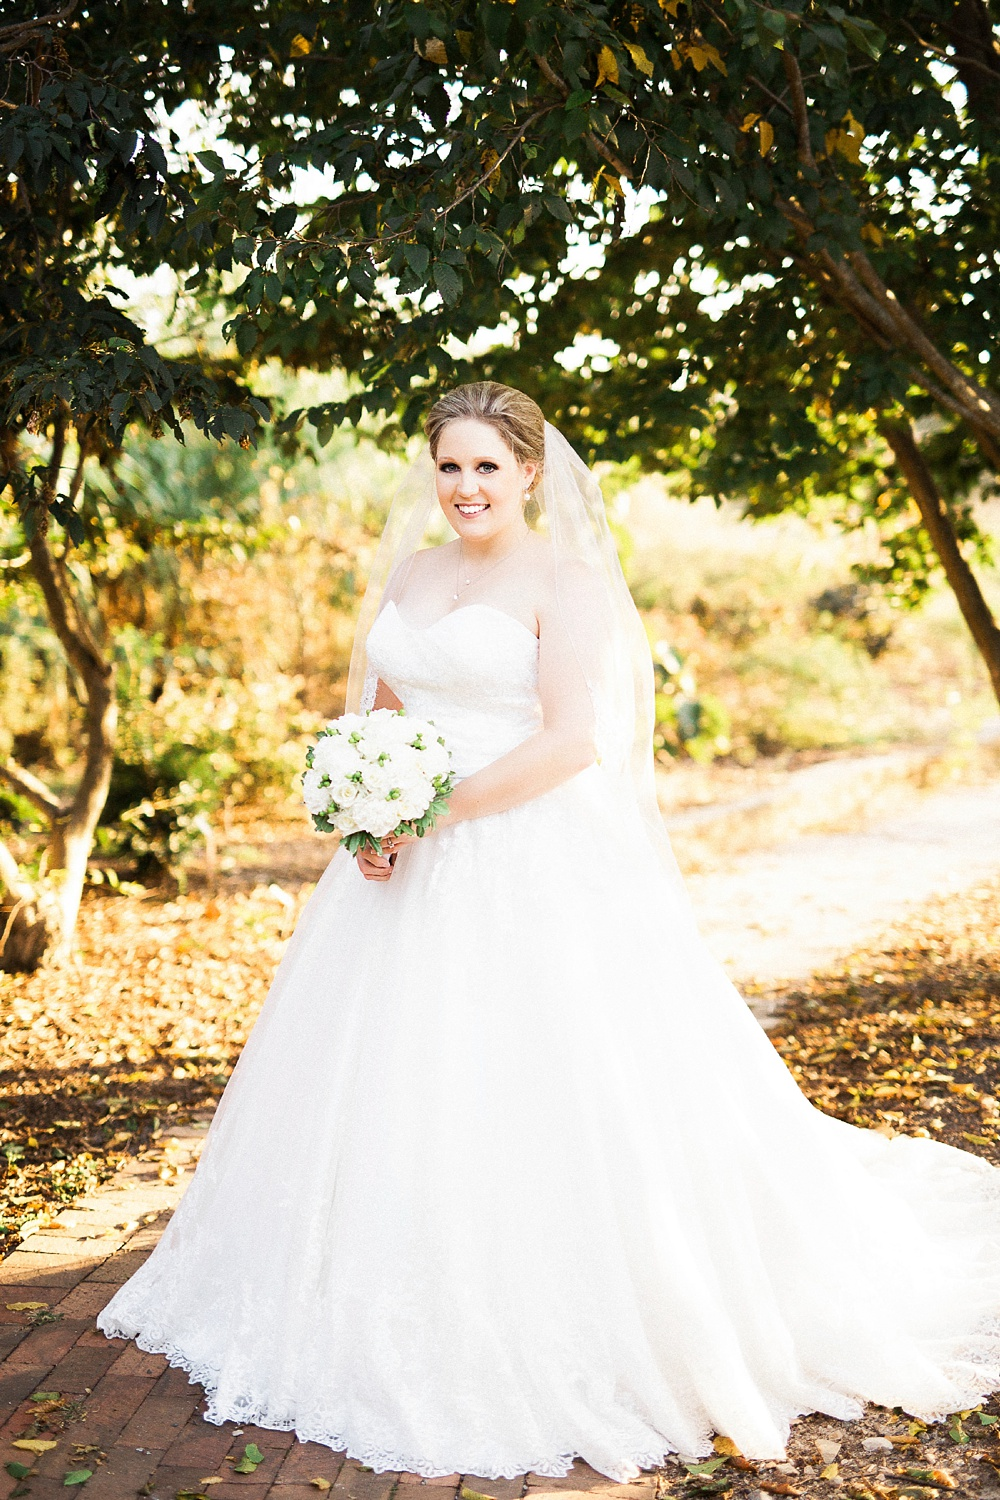 Rachael Bowman Photography-JC Raulston Arboretum-Raleigh-NC-Bridal Session-Photographer-Photos_0013.jpg